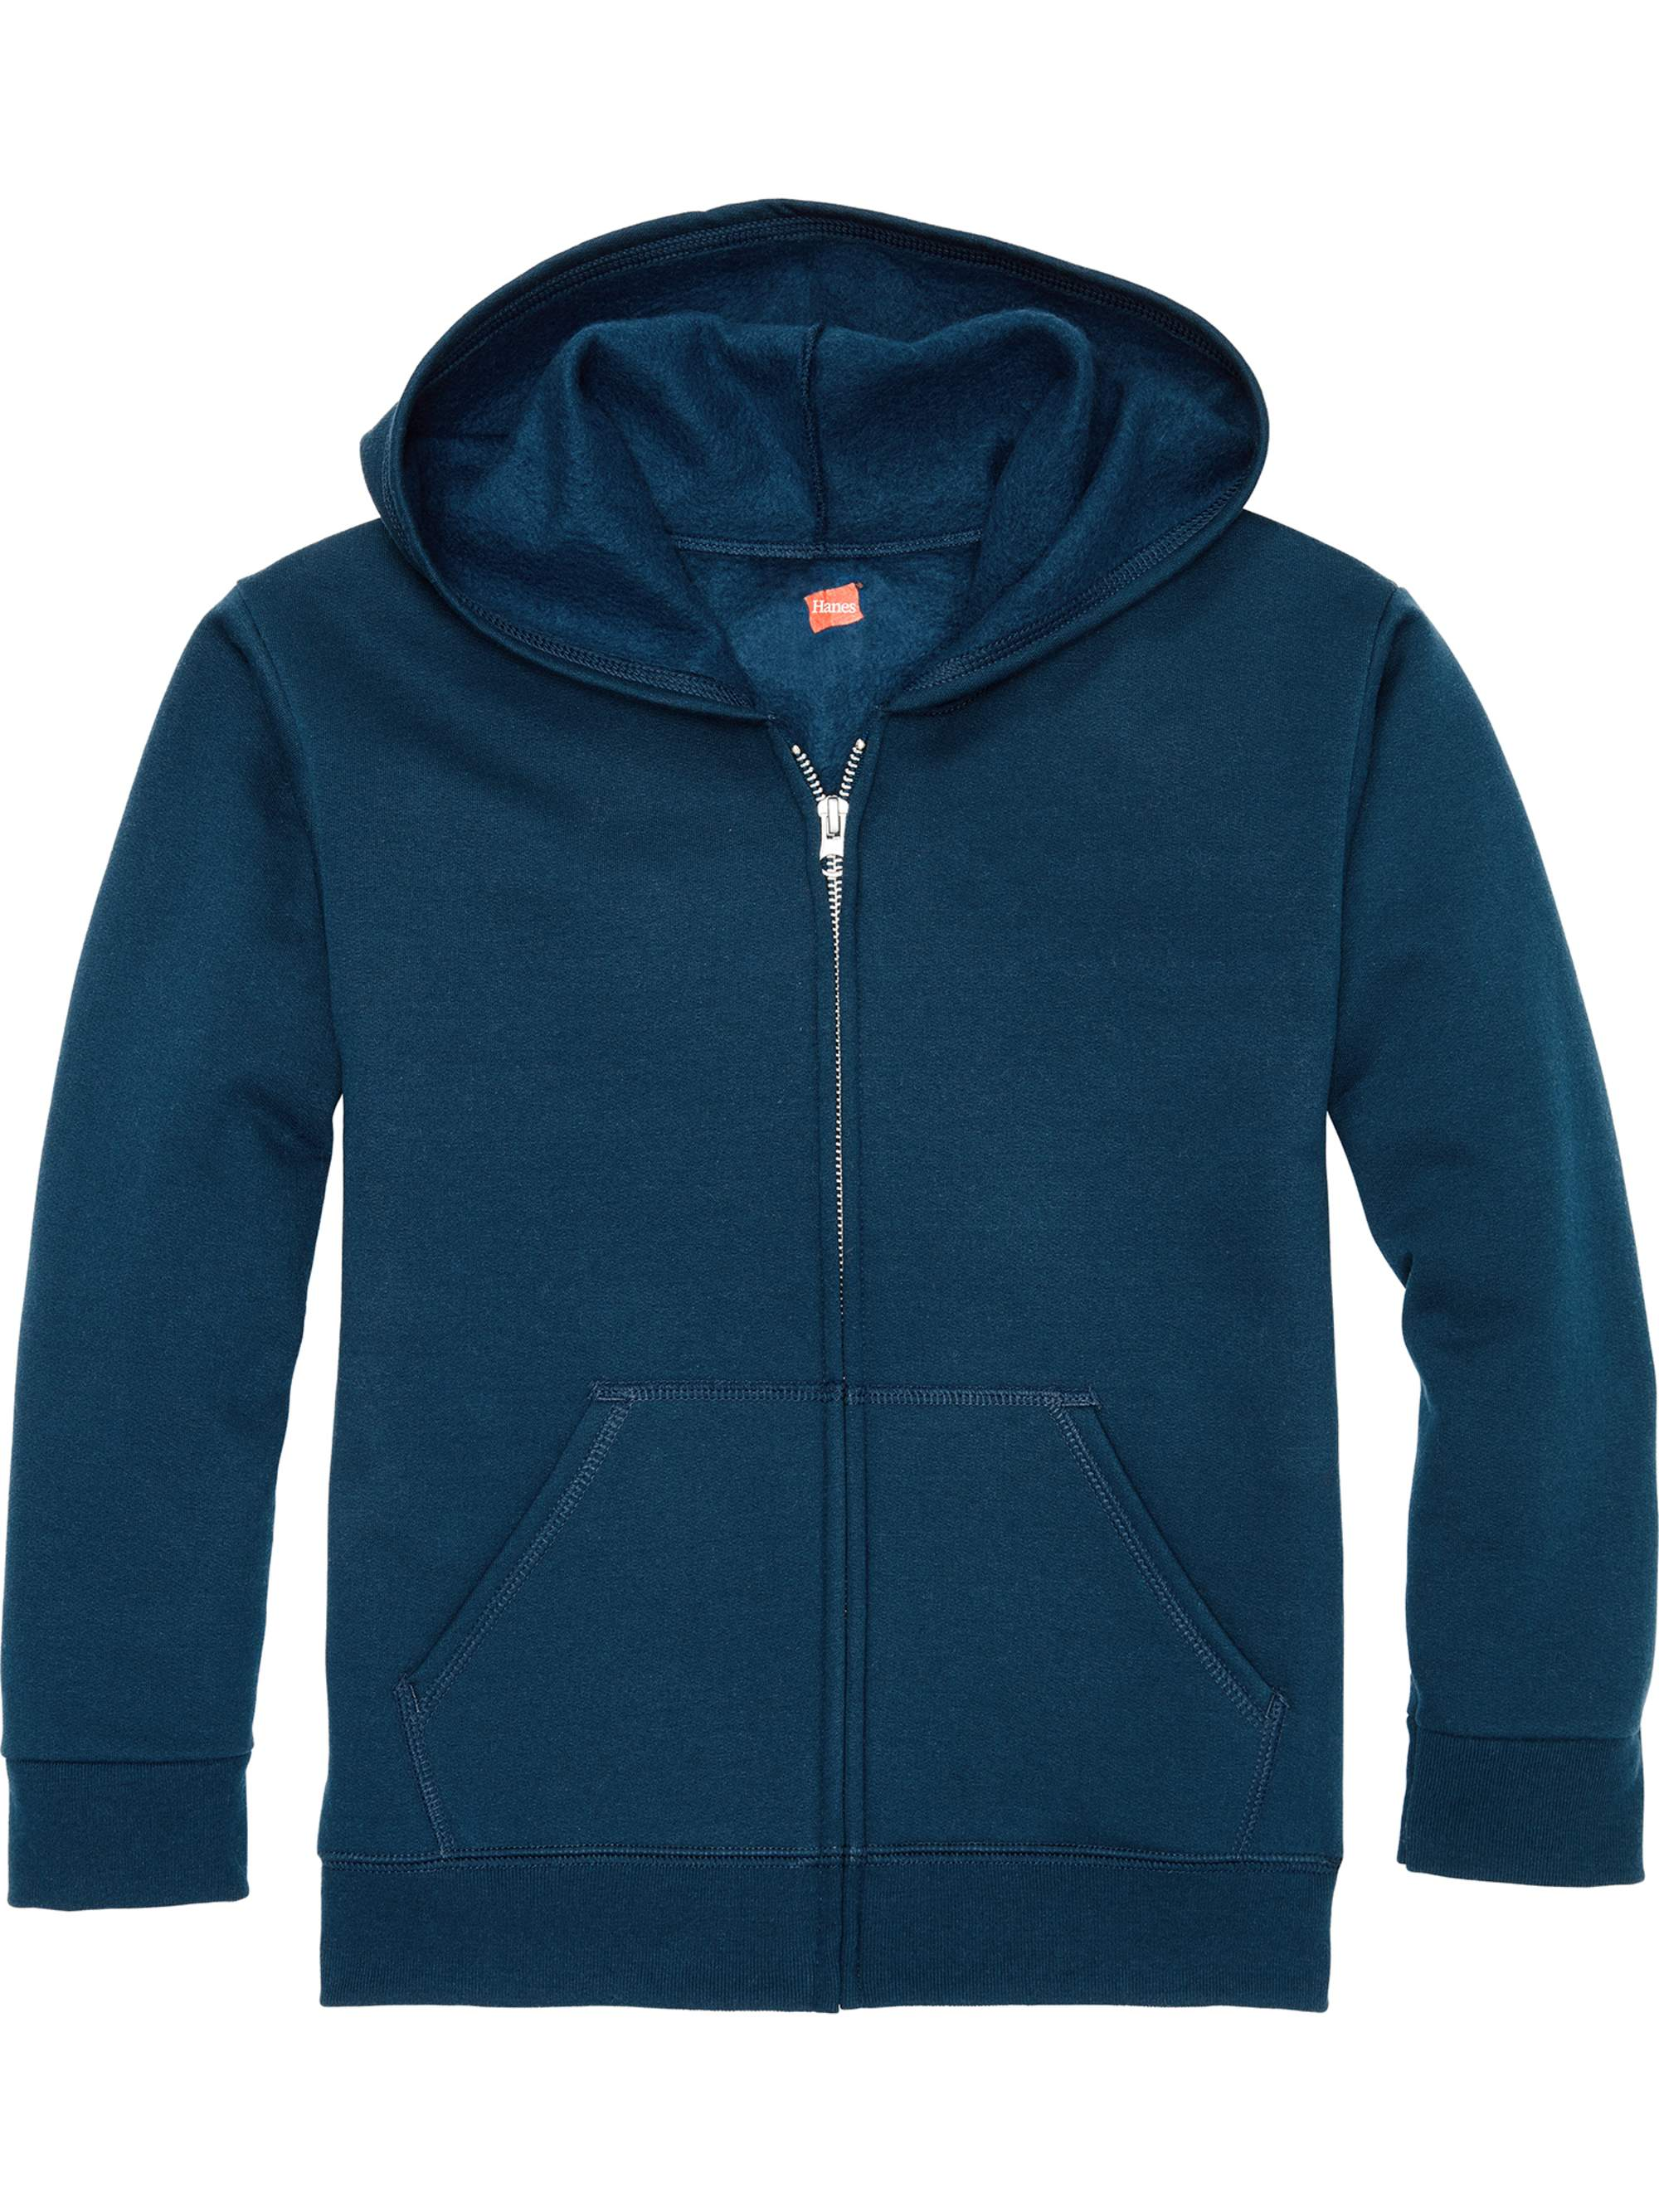 Solid Fleece Zip Up Hooded Sweatshirt (Little Boys & Big Boys)